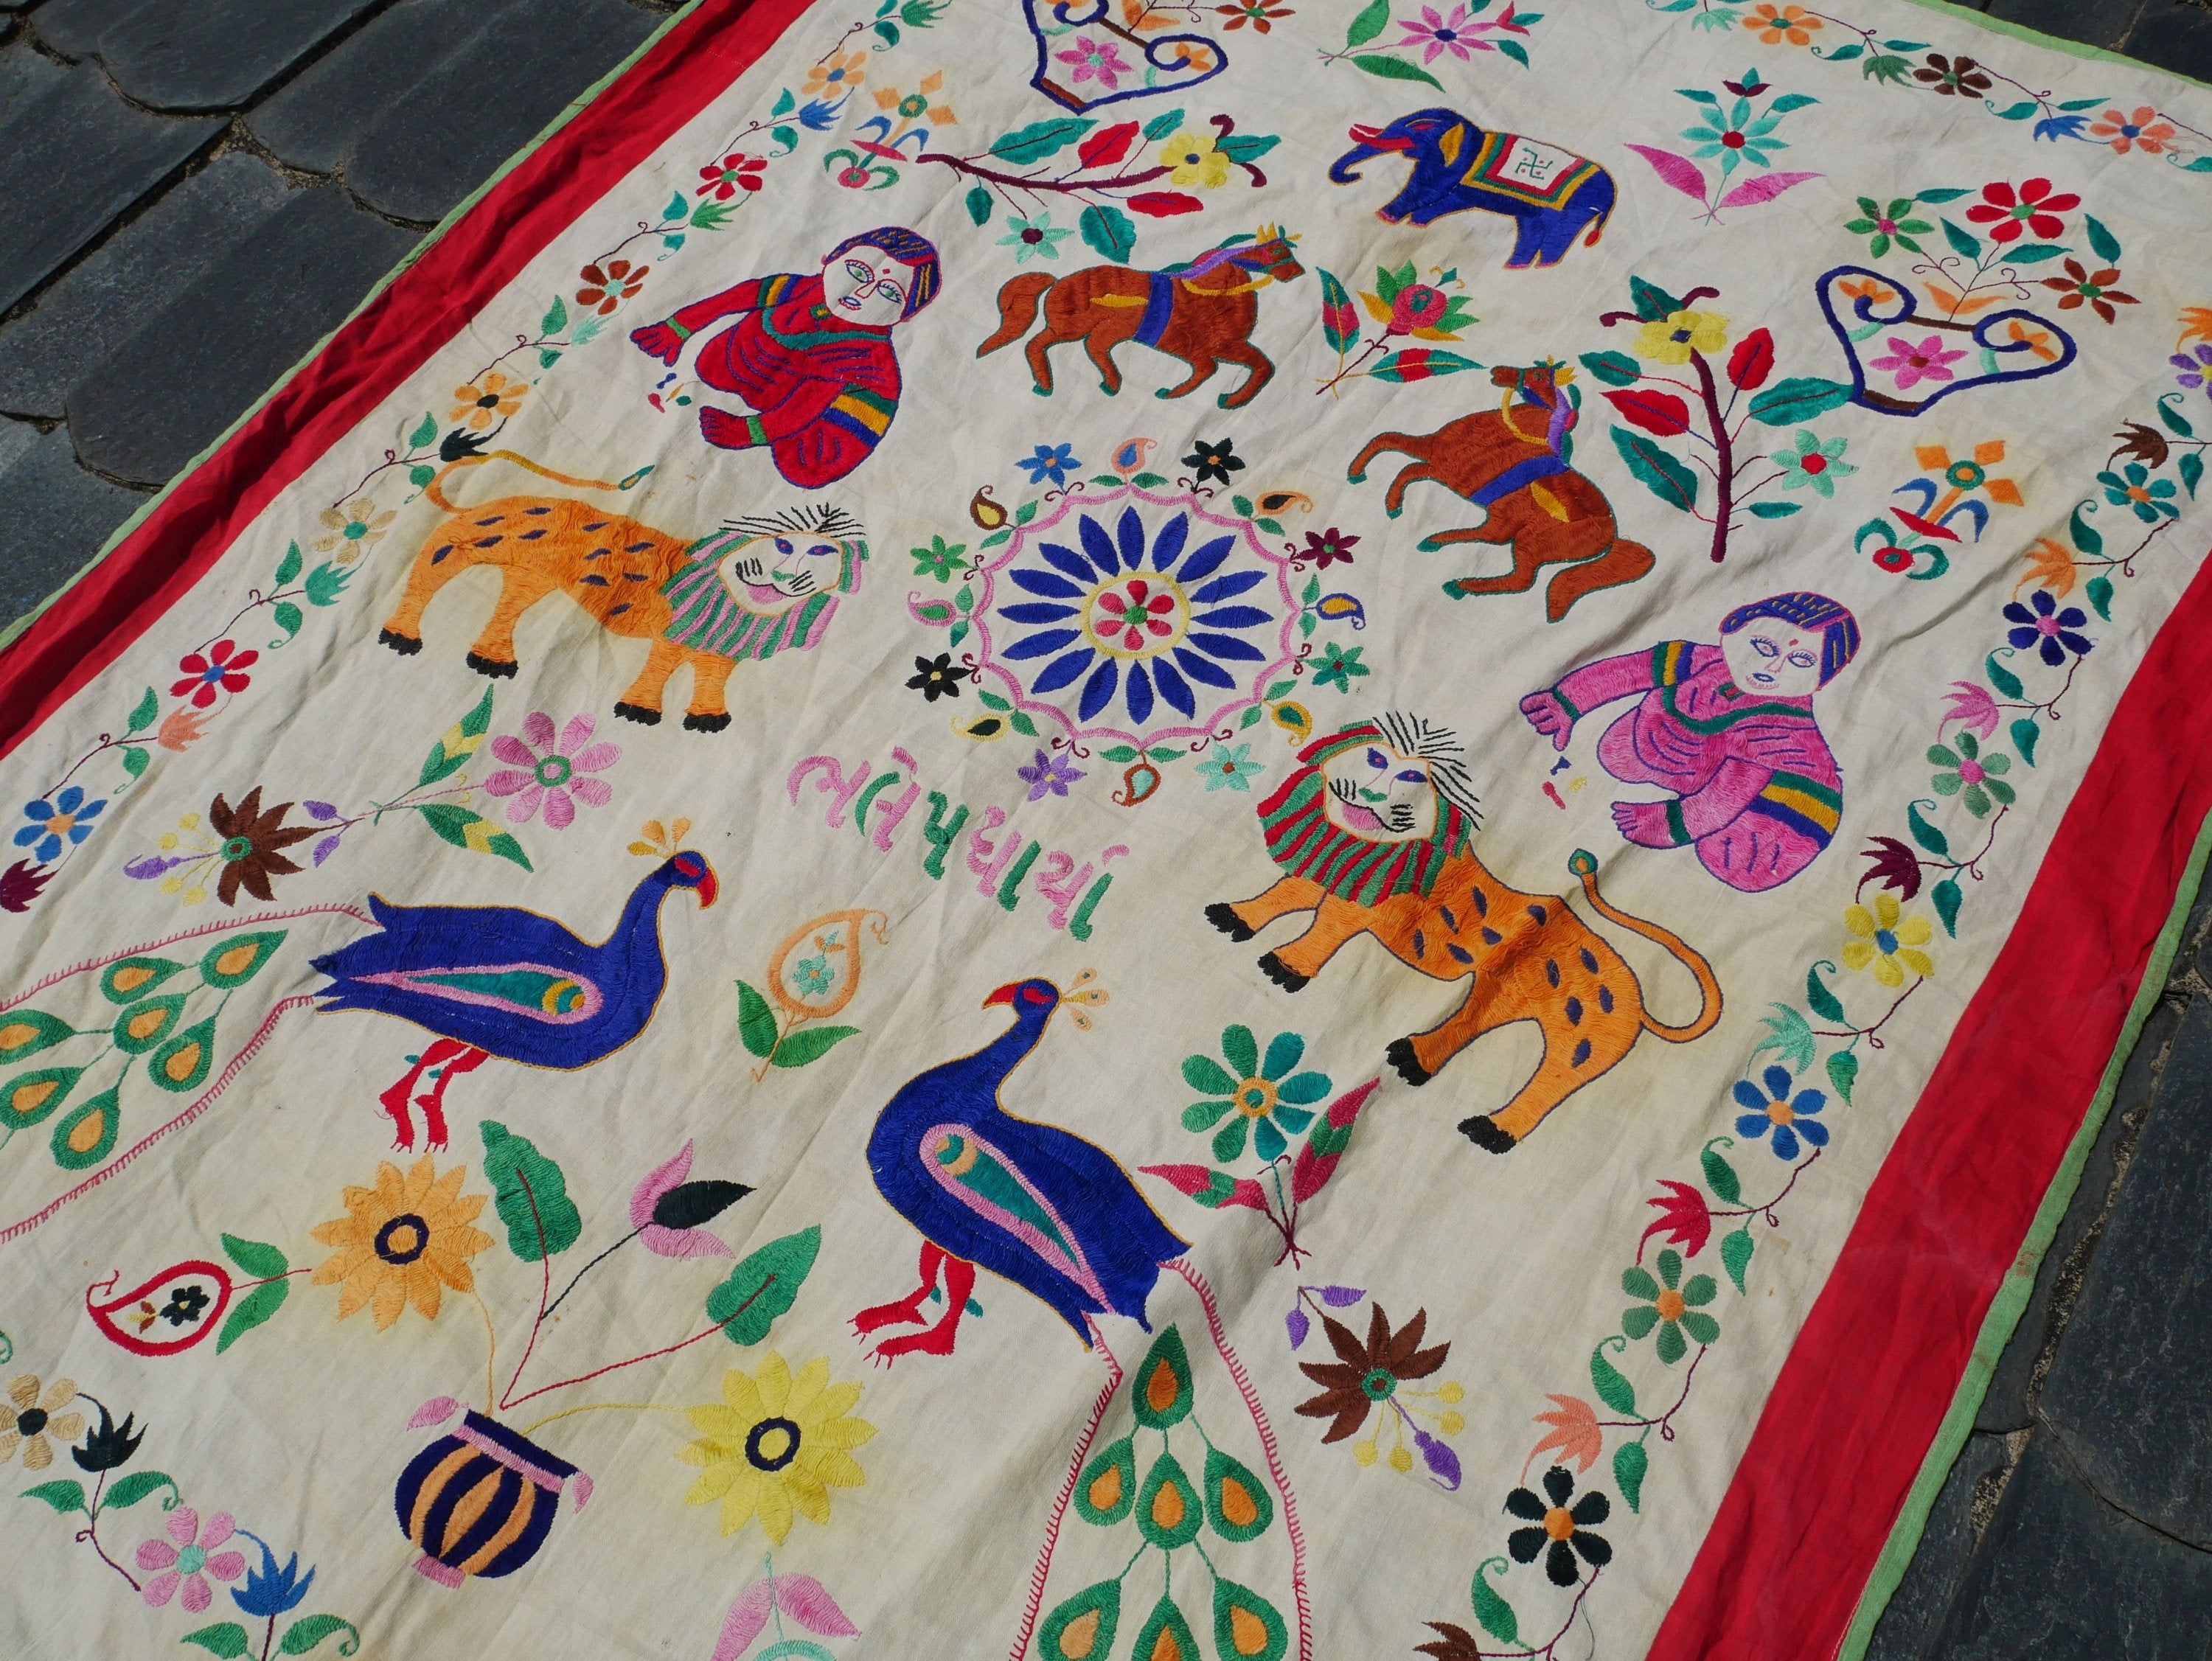 Vintage Banjara tapestry - authentic Gypsy wall art - traditional Kutch embroidery | Indian wall hanging